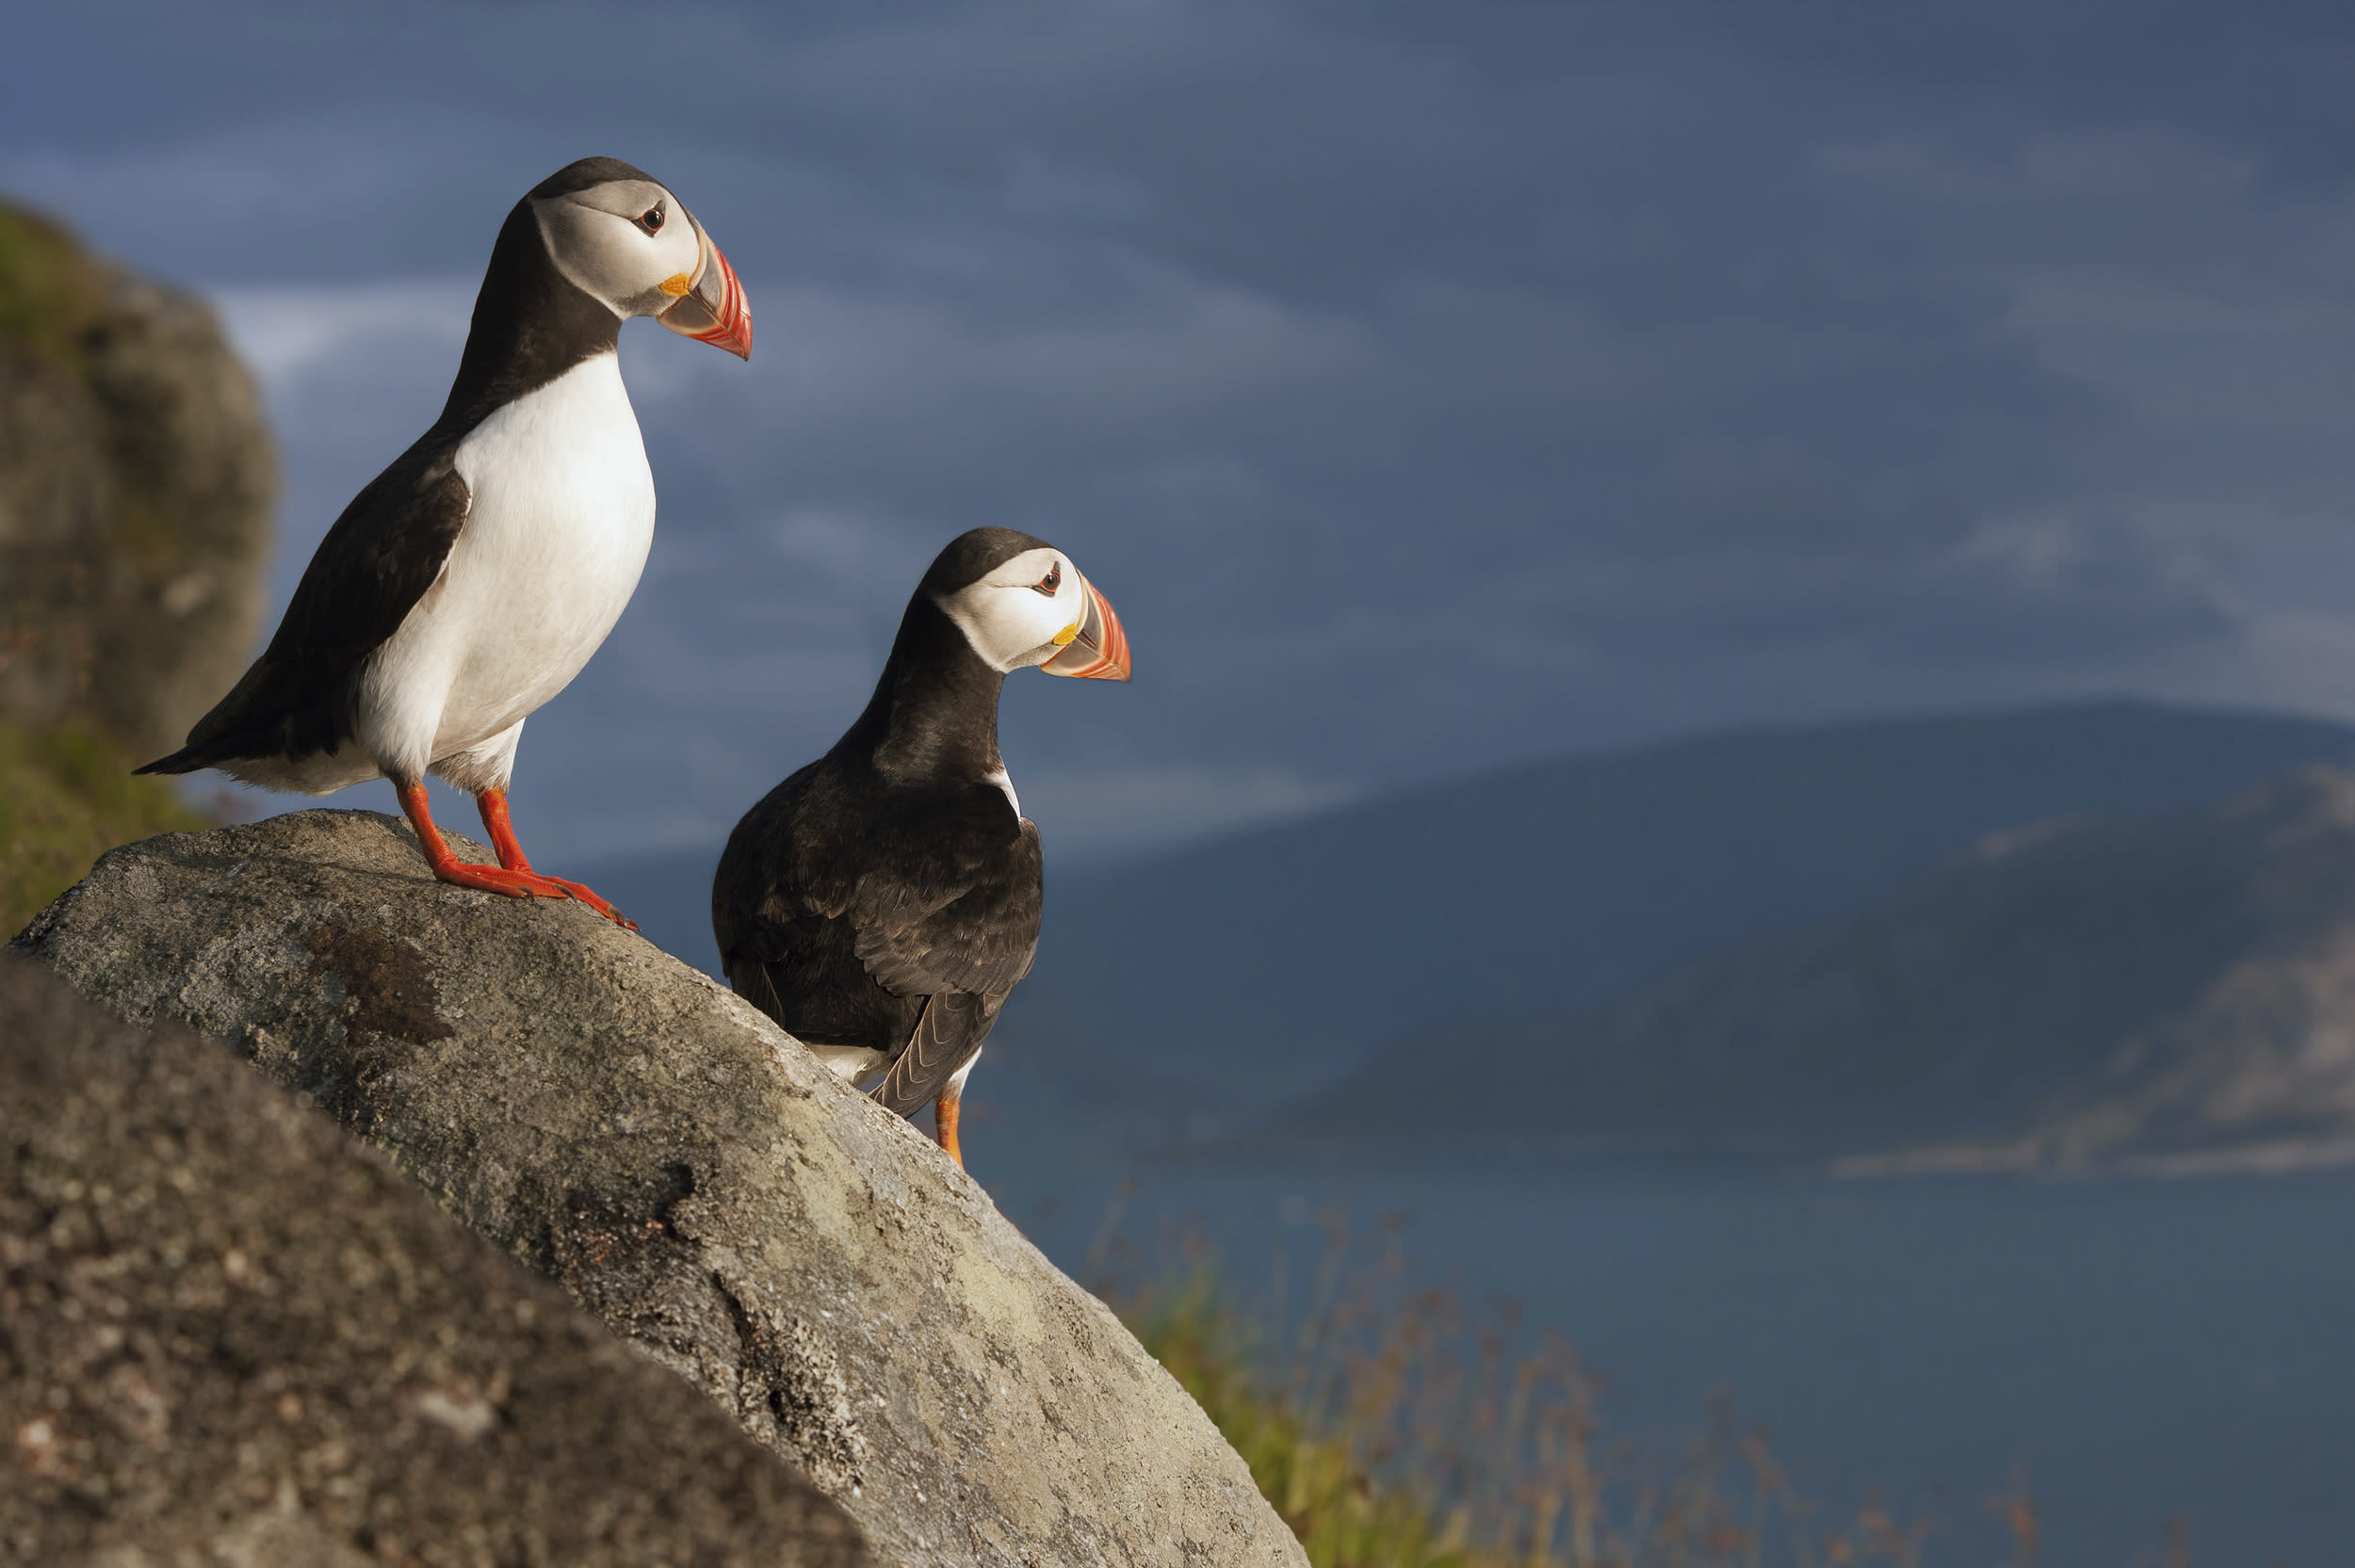 <p>Norway's famous bird island, Runde, is teeming with birds - more than 500,000 that visit from February to August during the nesting season. Bird mountain, with its cliff formations towards the ocean, is dominated by Atlantic puffins. Their nesting season is between April and August, when 100,000 pairs of puffins can be found on the western side of Runde. Outside puffin season, they stay at sea along the coast.</p>